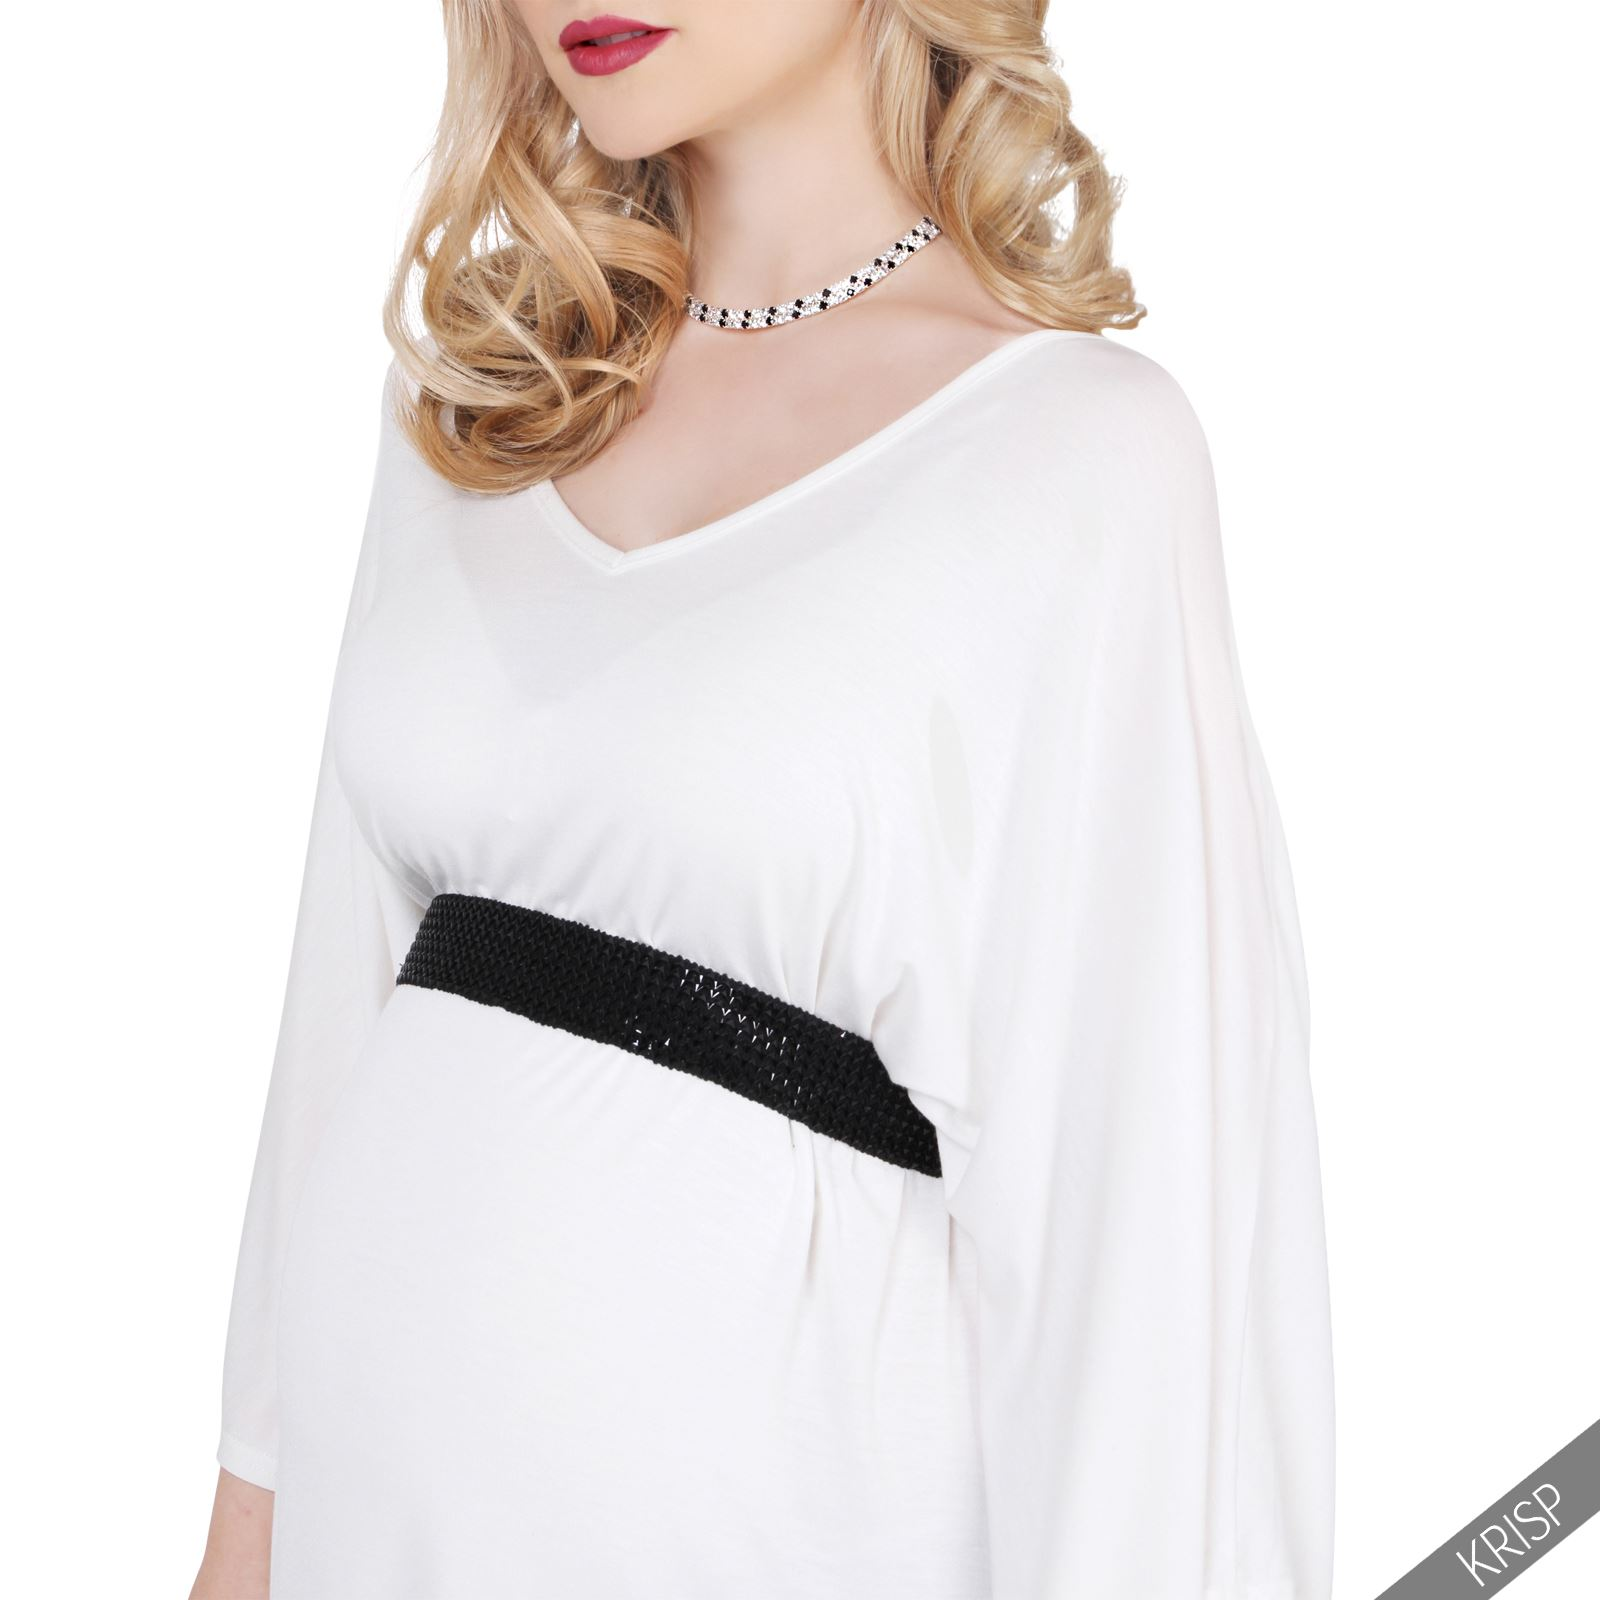 Maternity womens v neck tunic top pregnancy wear loose for Best v neck t shirts